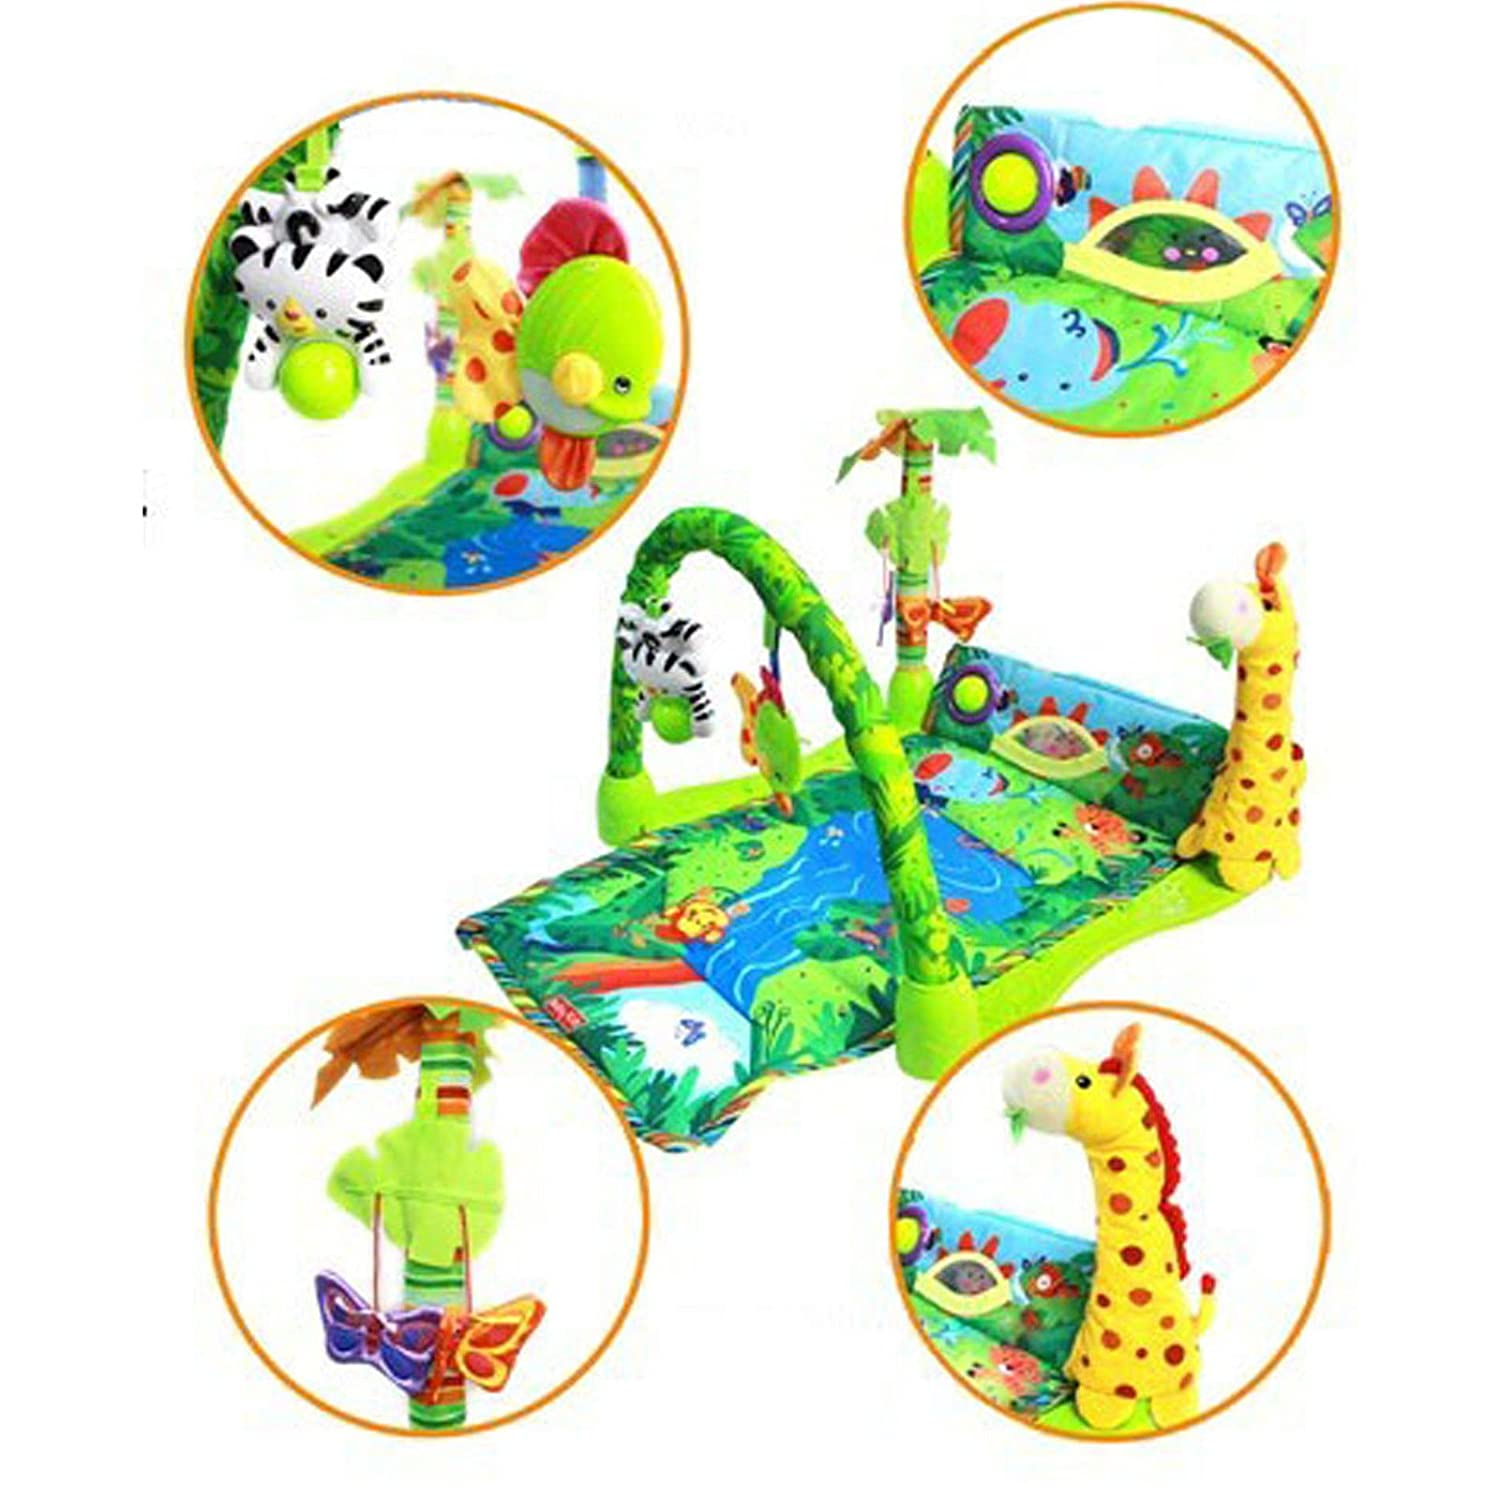 Amazoncom Baby Gift Rainforest Musical Baby Activity Play Gym Toy